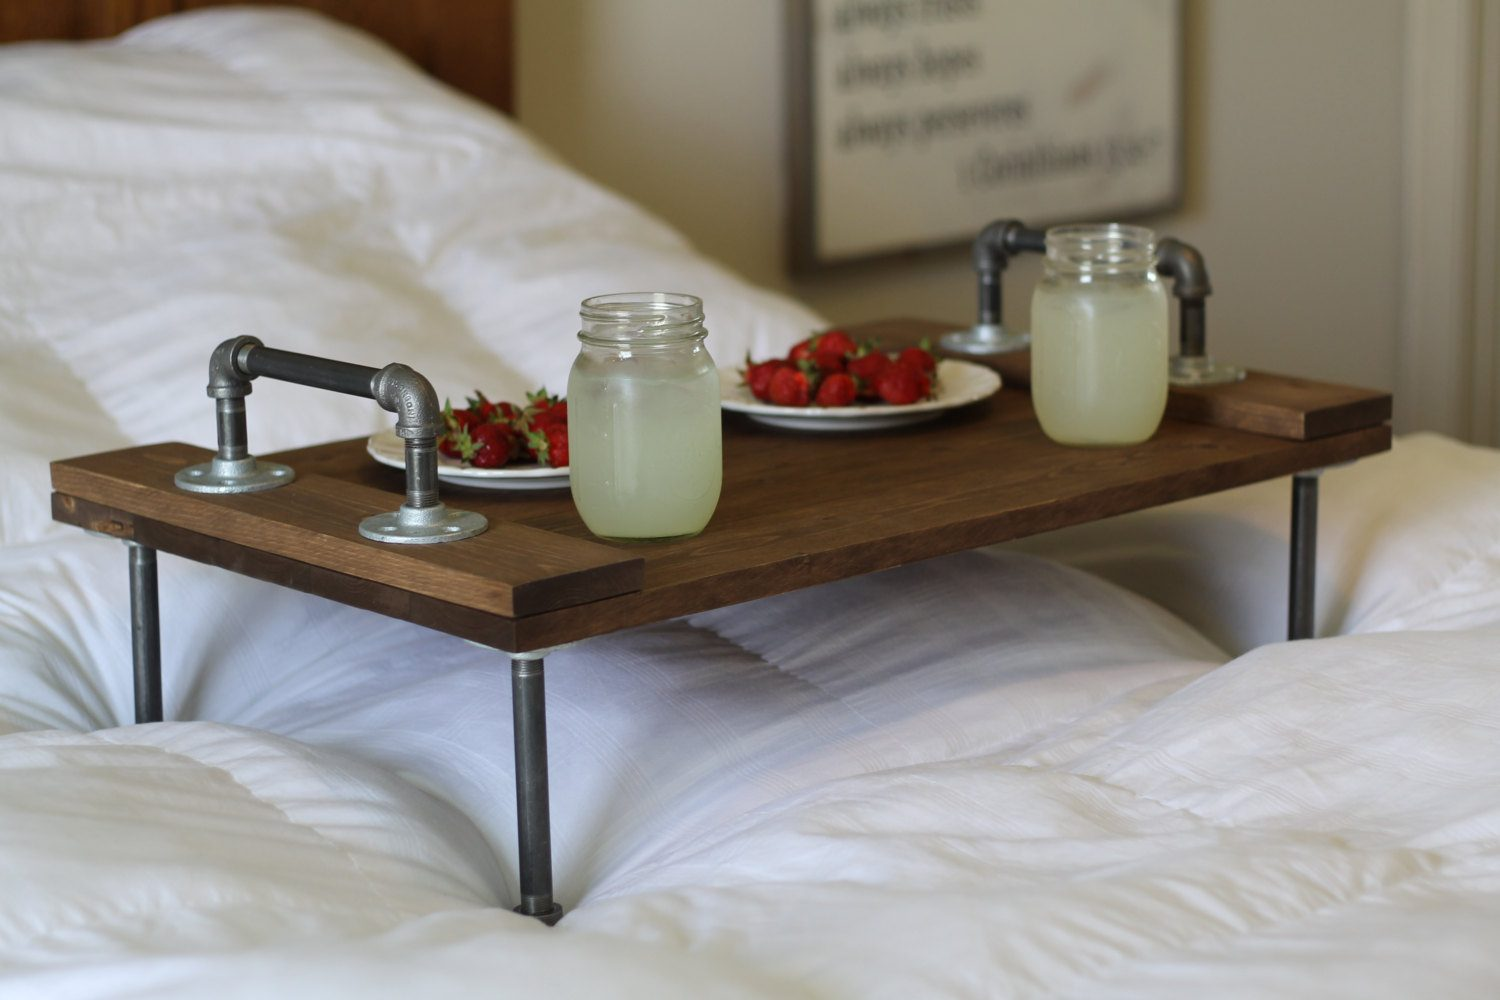 Overbed Table (Bed Tray). Expanding Functionality Element in Modern Home. Metal legs and wooden top woth handles